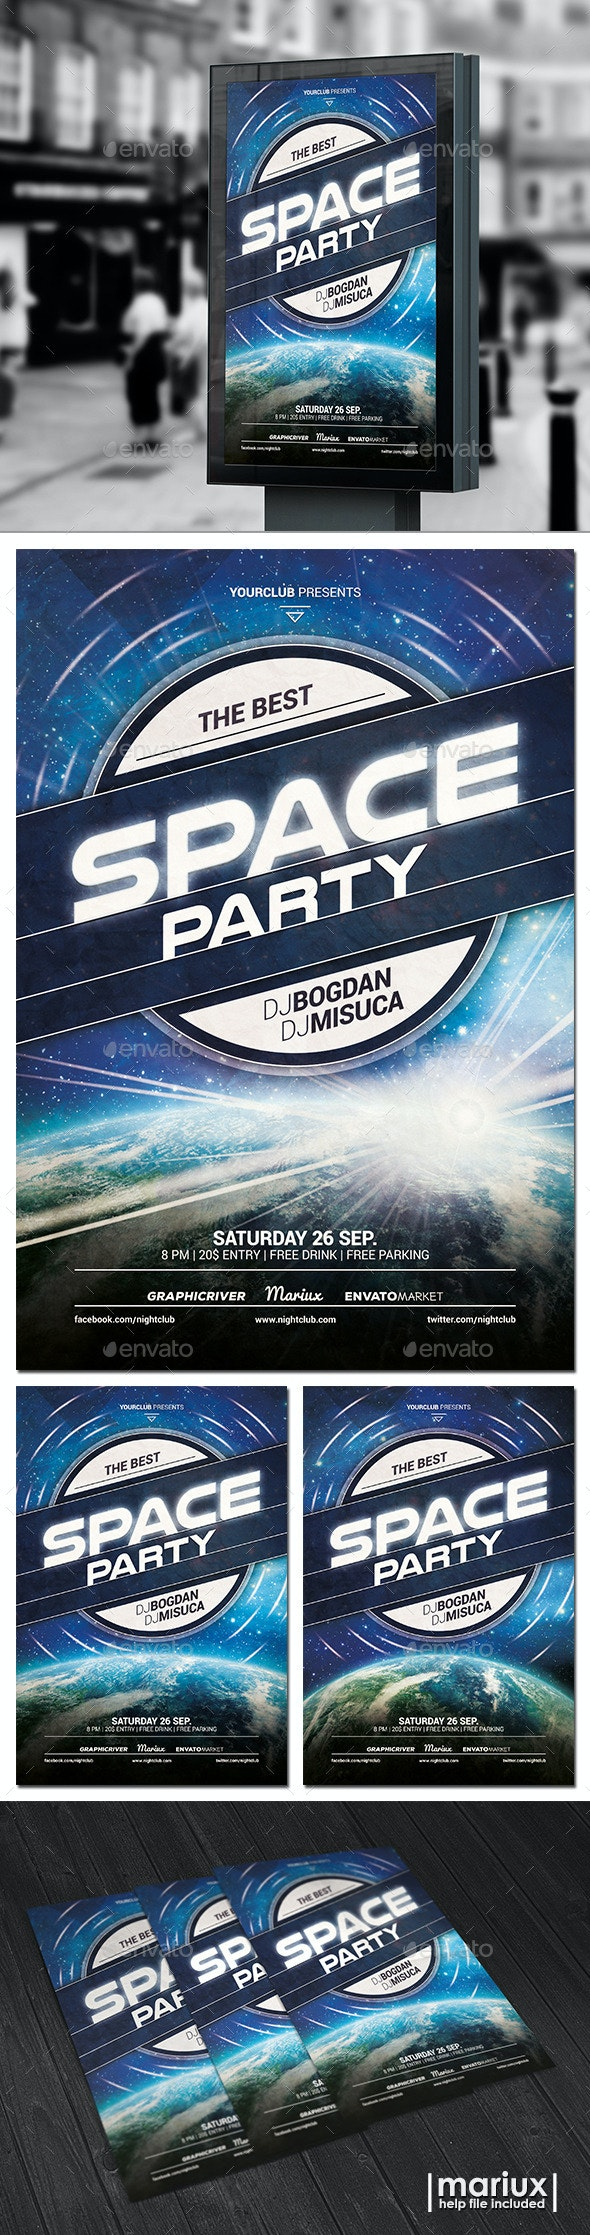 Space Party Flyer - Clubs & Parties Events